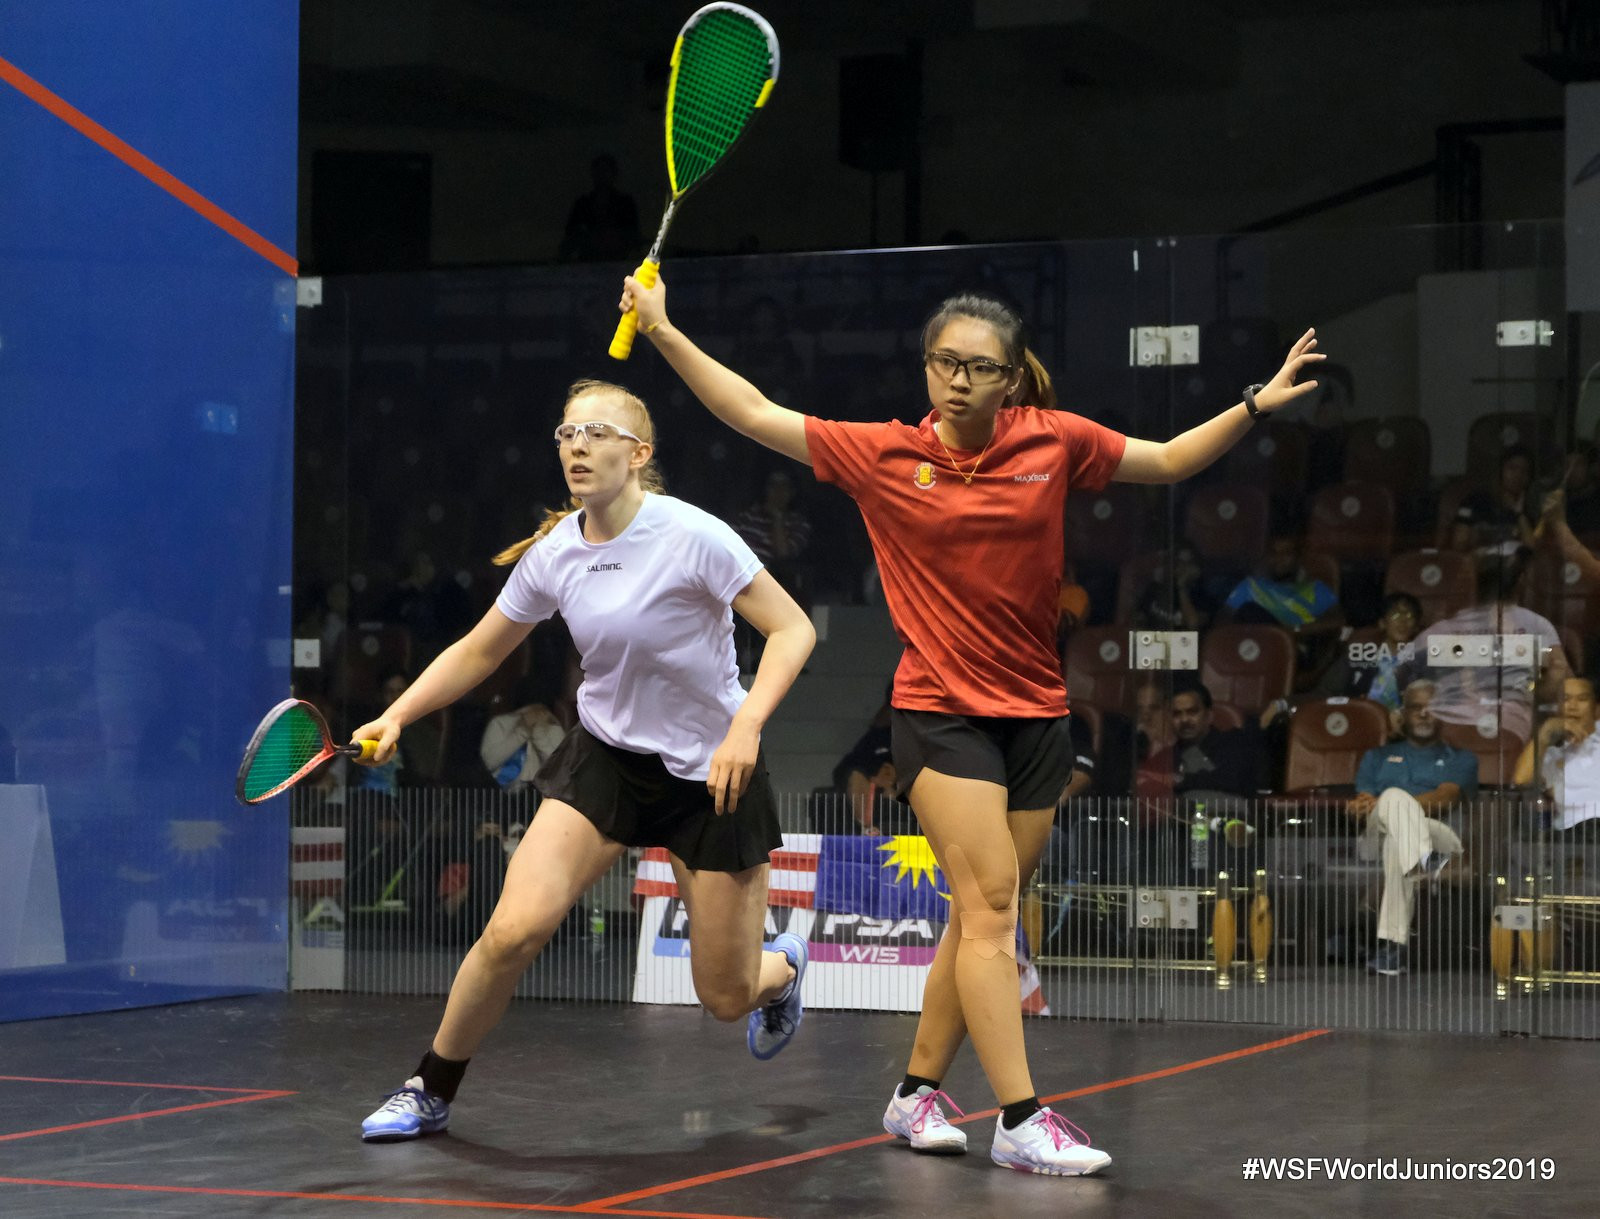 Top four seeds all victorious in World Junior Team Squash Championship quarter-finals